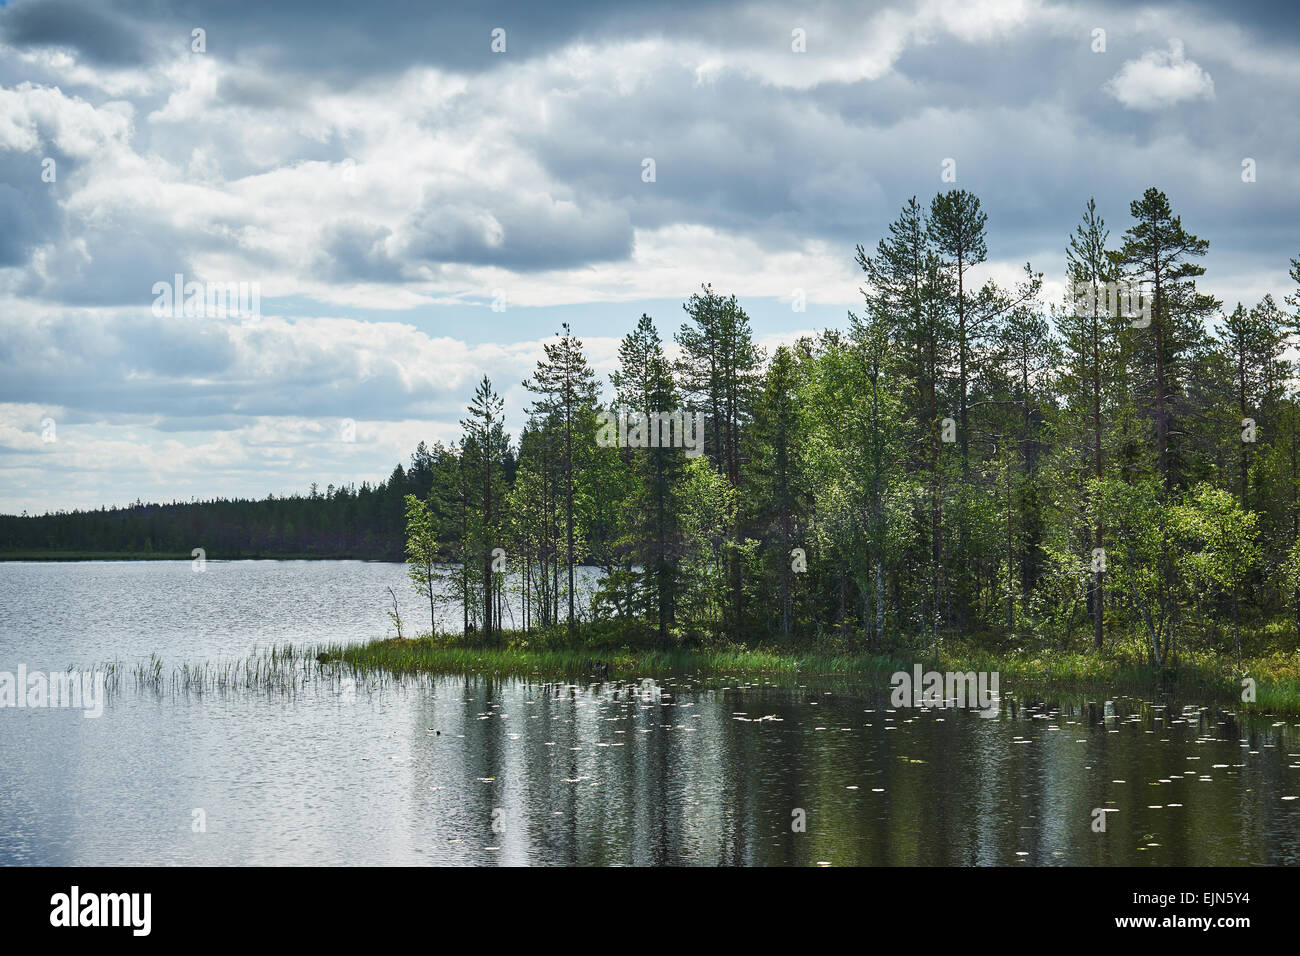 Finnish lake in spring, with trees and a cloudy sky - Stock Image